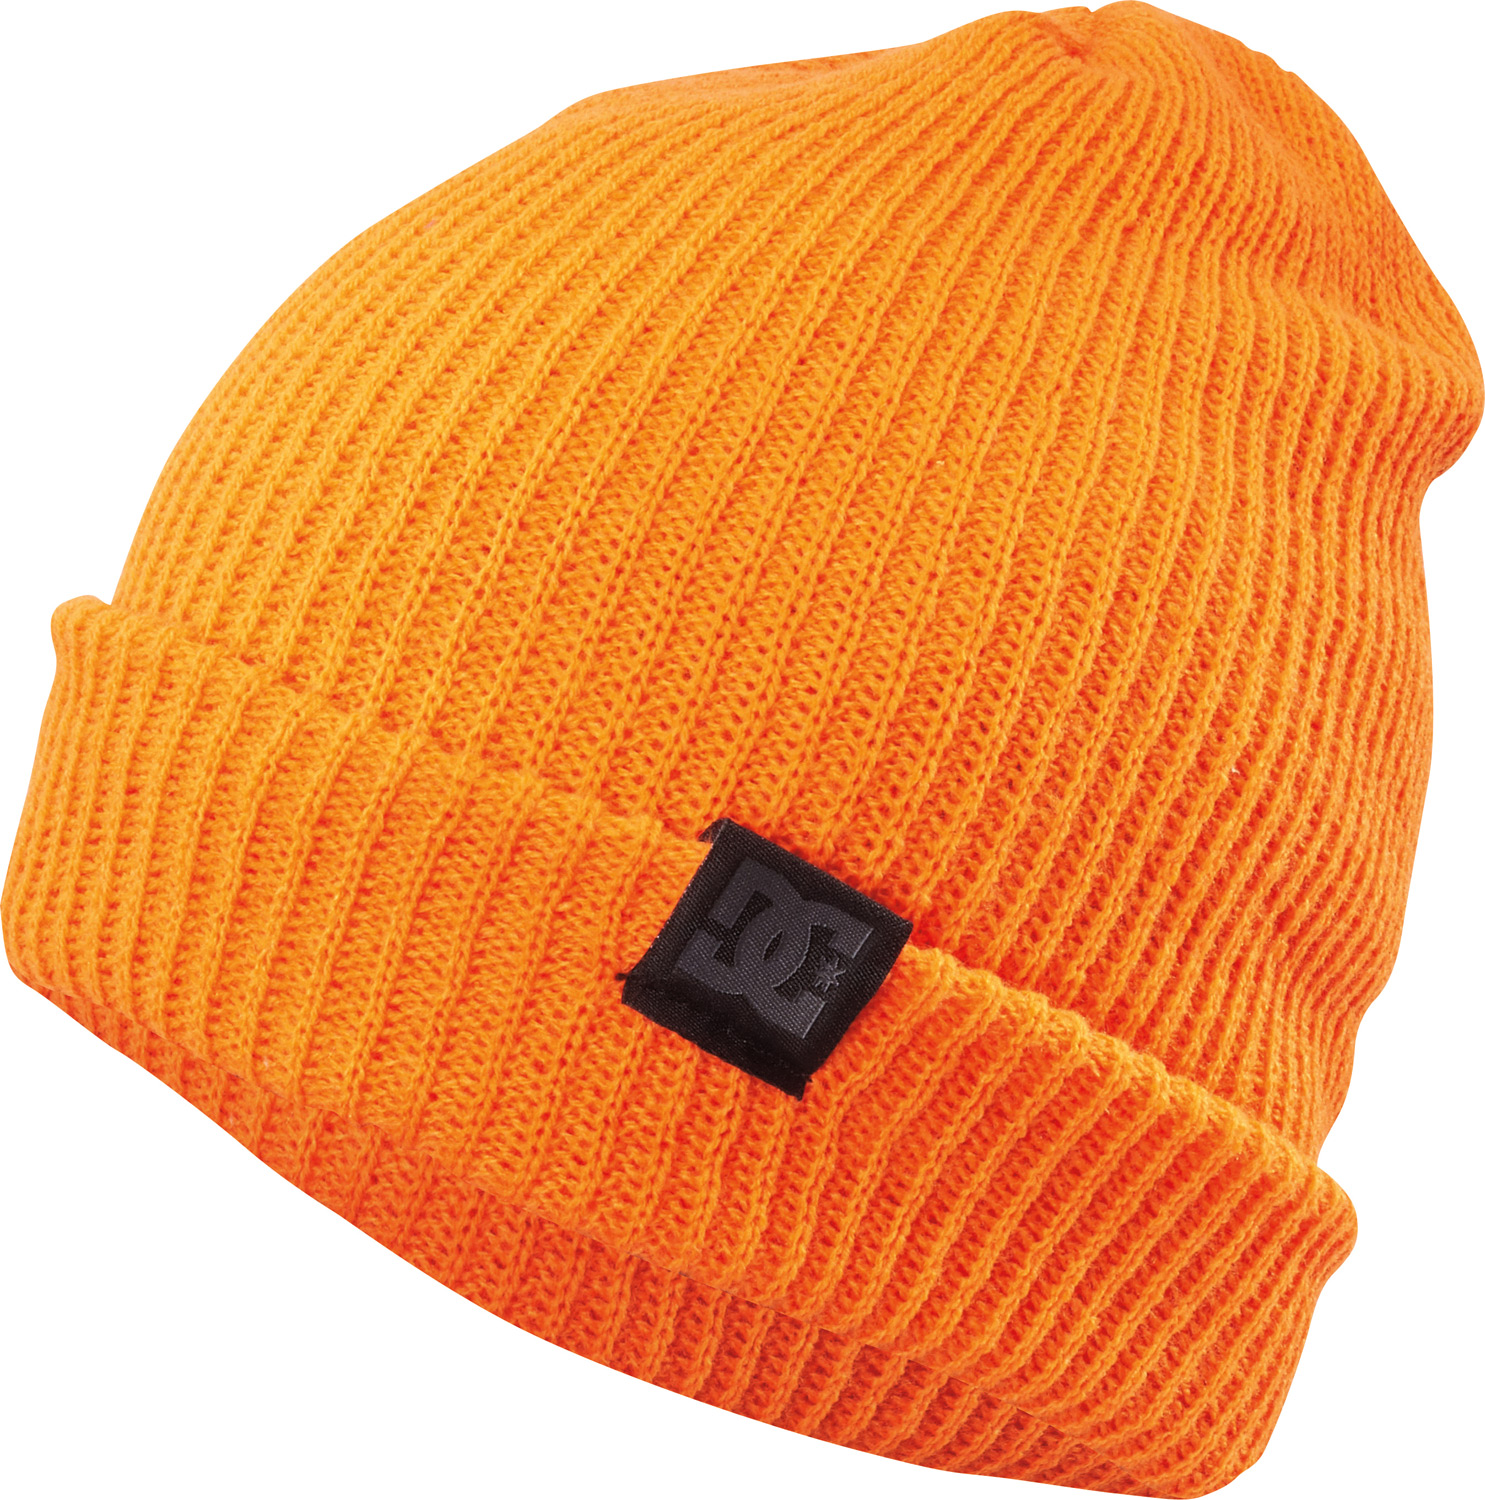 If you like all types of beanies, you will love the Yepa Hazard Beanie from DC. This beanie is good for all seasons and you can enjoy all types of activities during the winter months. With a 100% acrylic finish and slouch fit, this beanie is a good hat for those who want more comfort.Key Features of the DC Yepa Beanie:  Slouch fit beanie  100% acrylic - $11.95